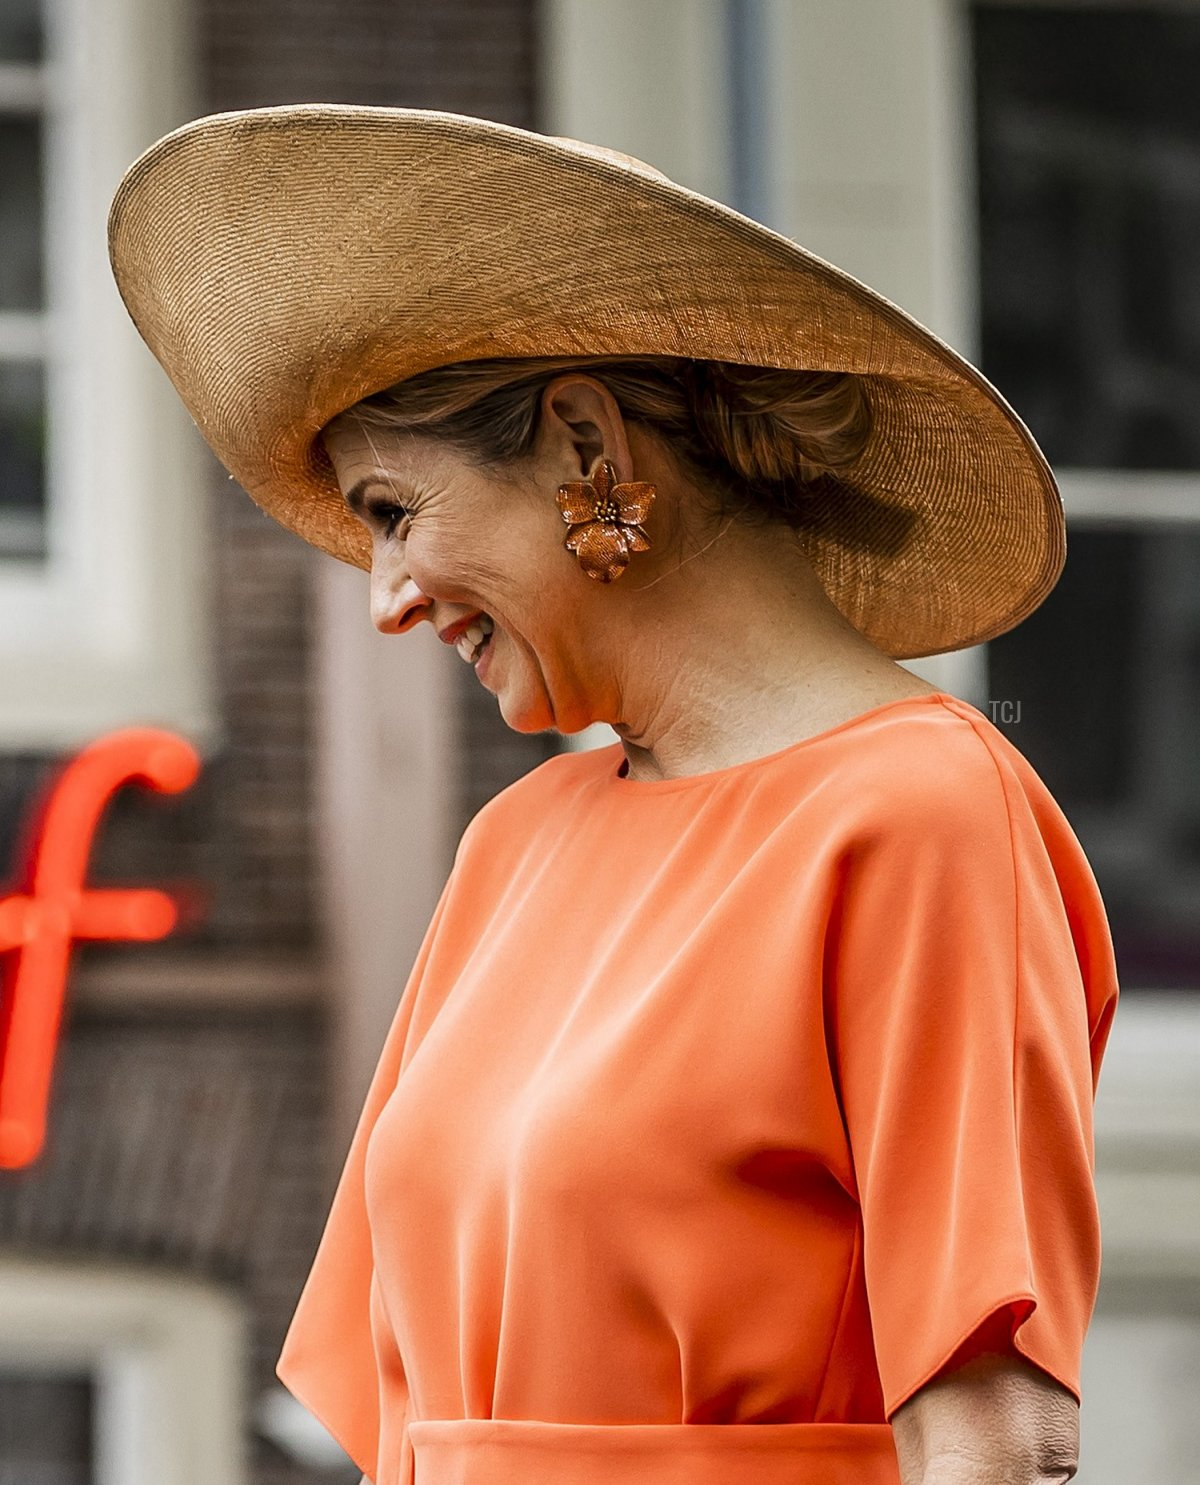 Netherlands' Queen Maxima watches a robot cutting a ribbon during the opening of a 3D-printed bridge at the Oudezijds Achterburgwal in Amsterdam on July 15, 2021